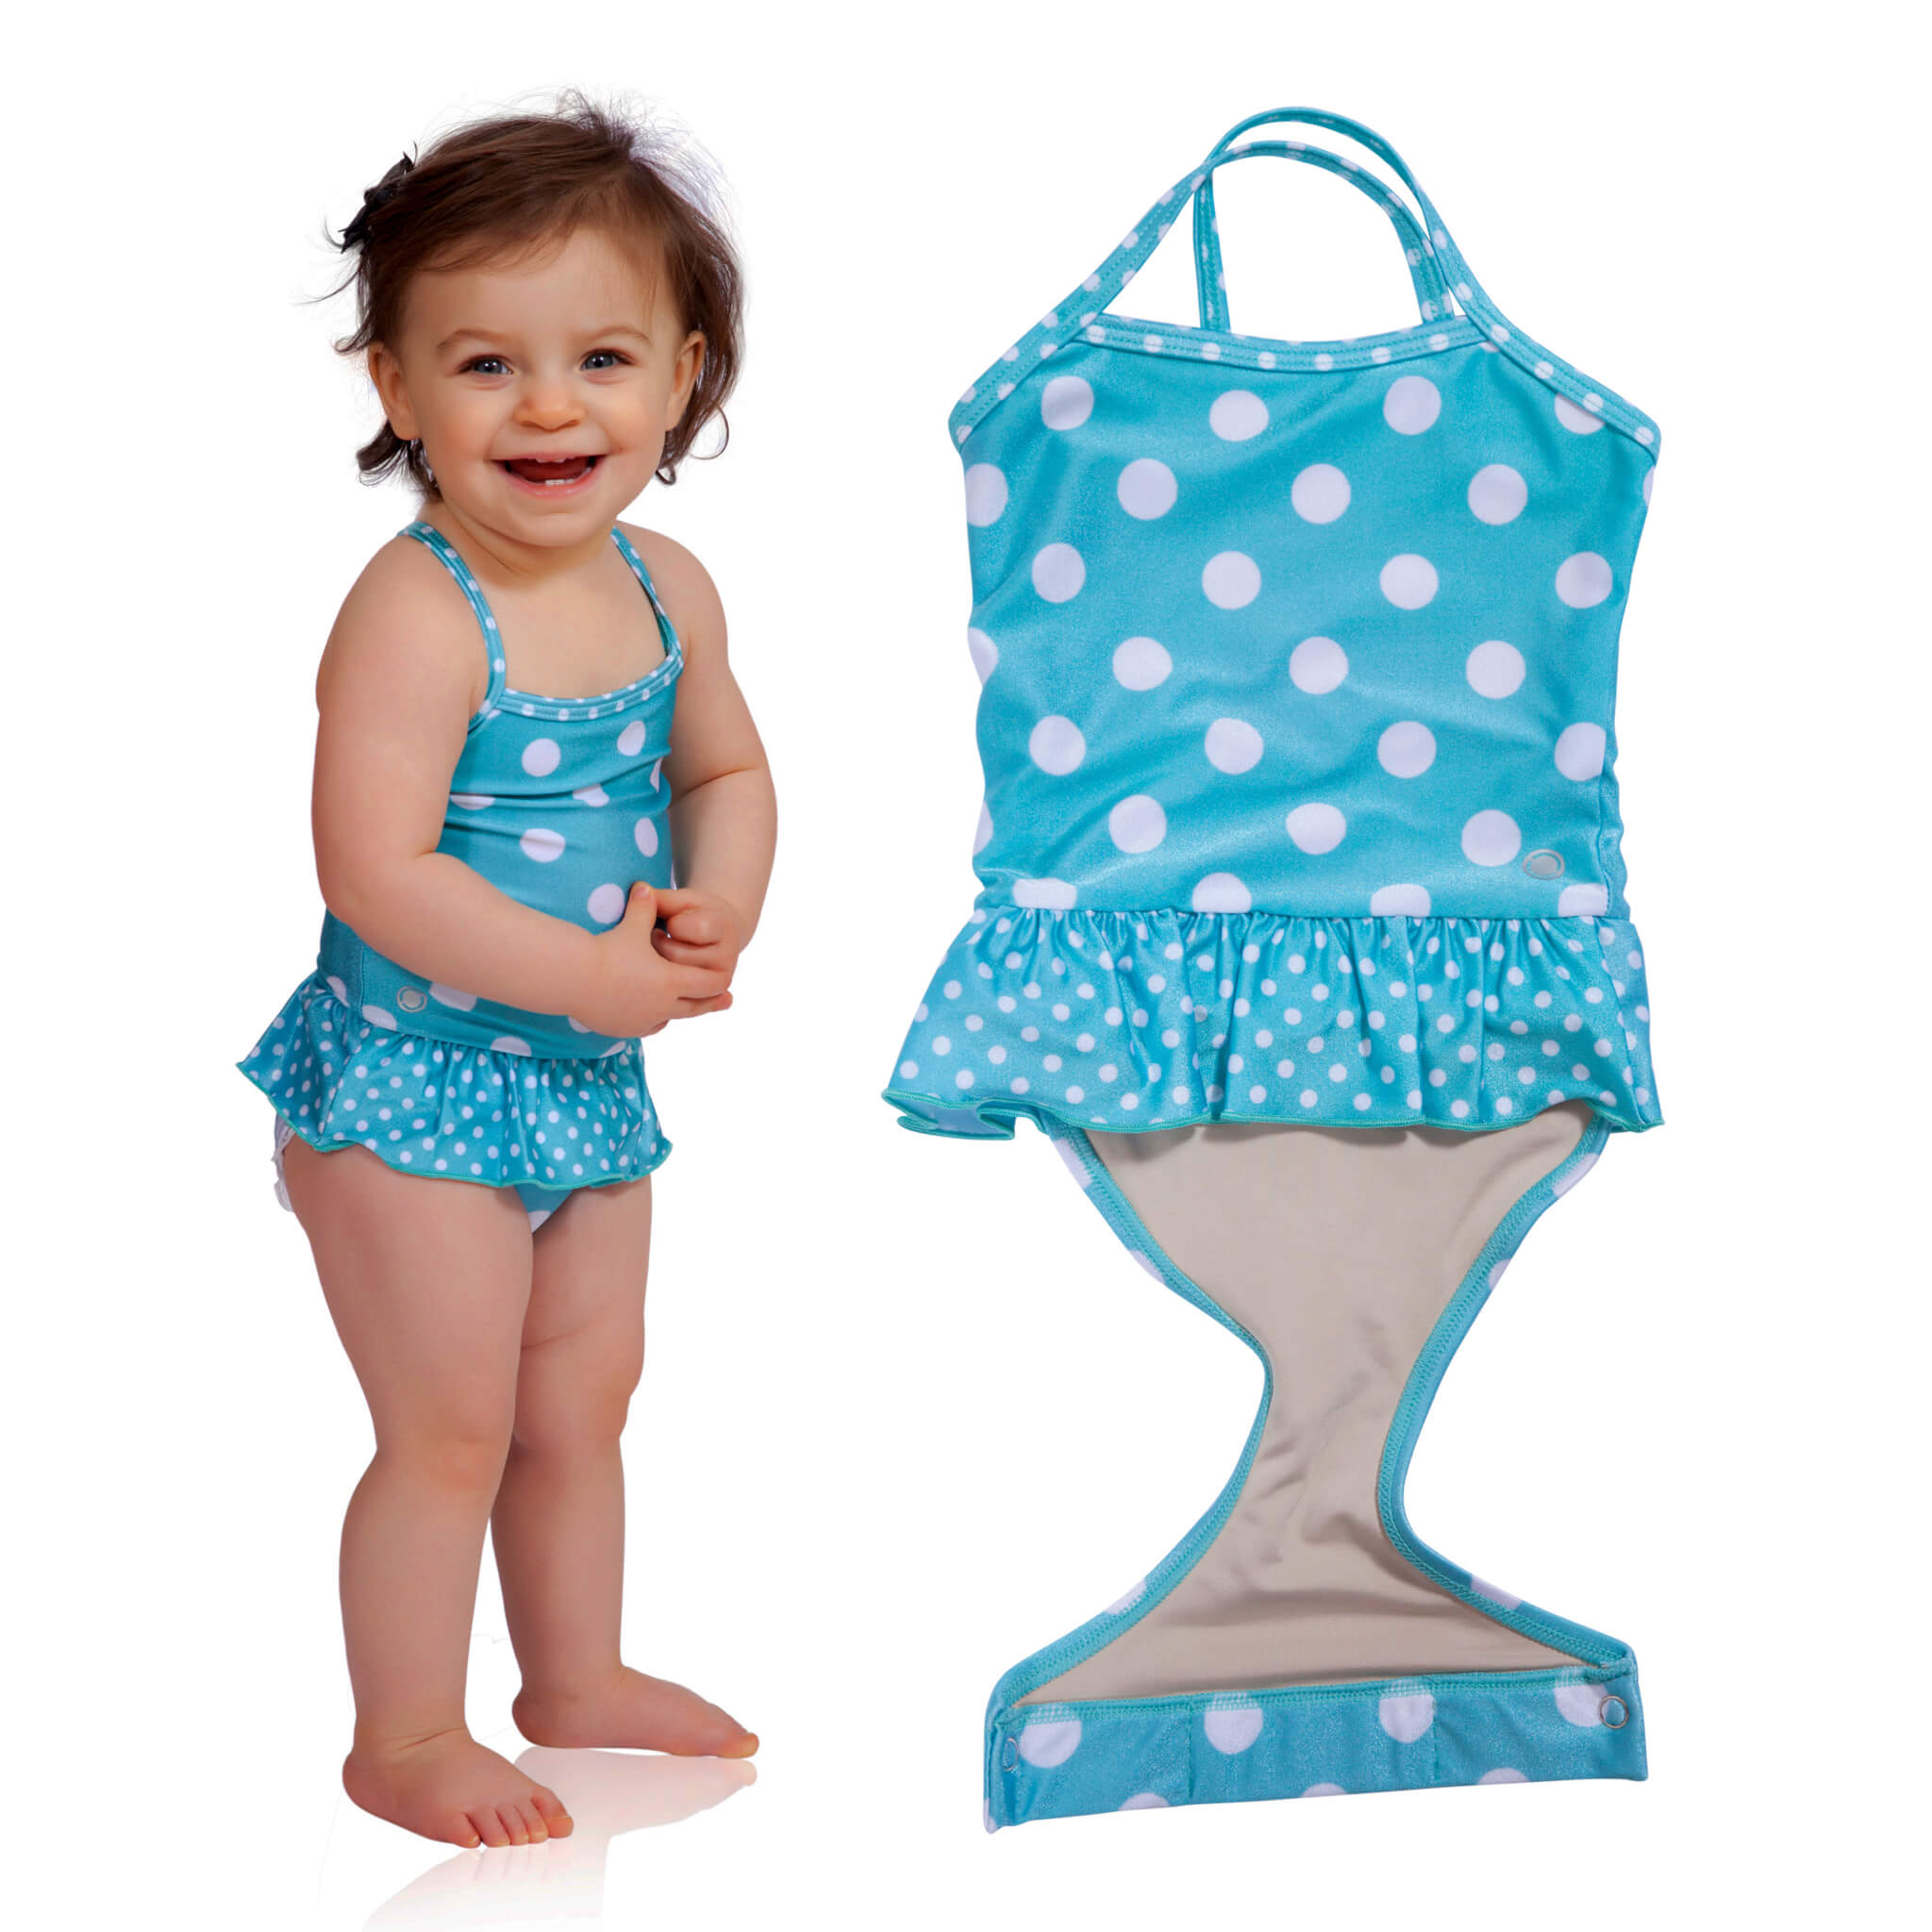 Aqua Polka Dot toddler girl swimsuit with ruffle by FASTEN. Features patented design that opens at the waist, making diaper changes and bathroom breaks faster and easier. Sizes 6m-18m. UPF 50+ sun protection built in. Polka dot swimsuit for girls.